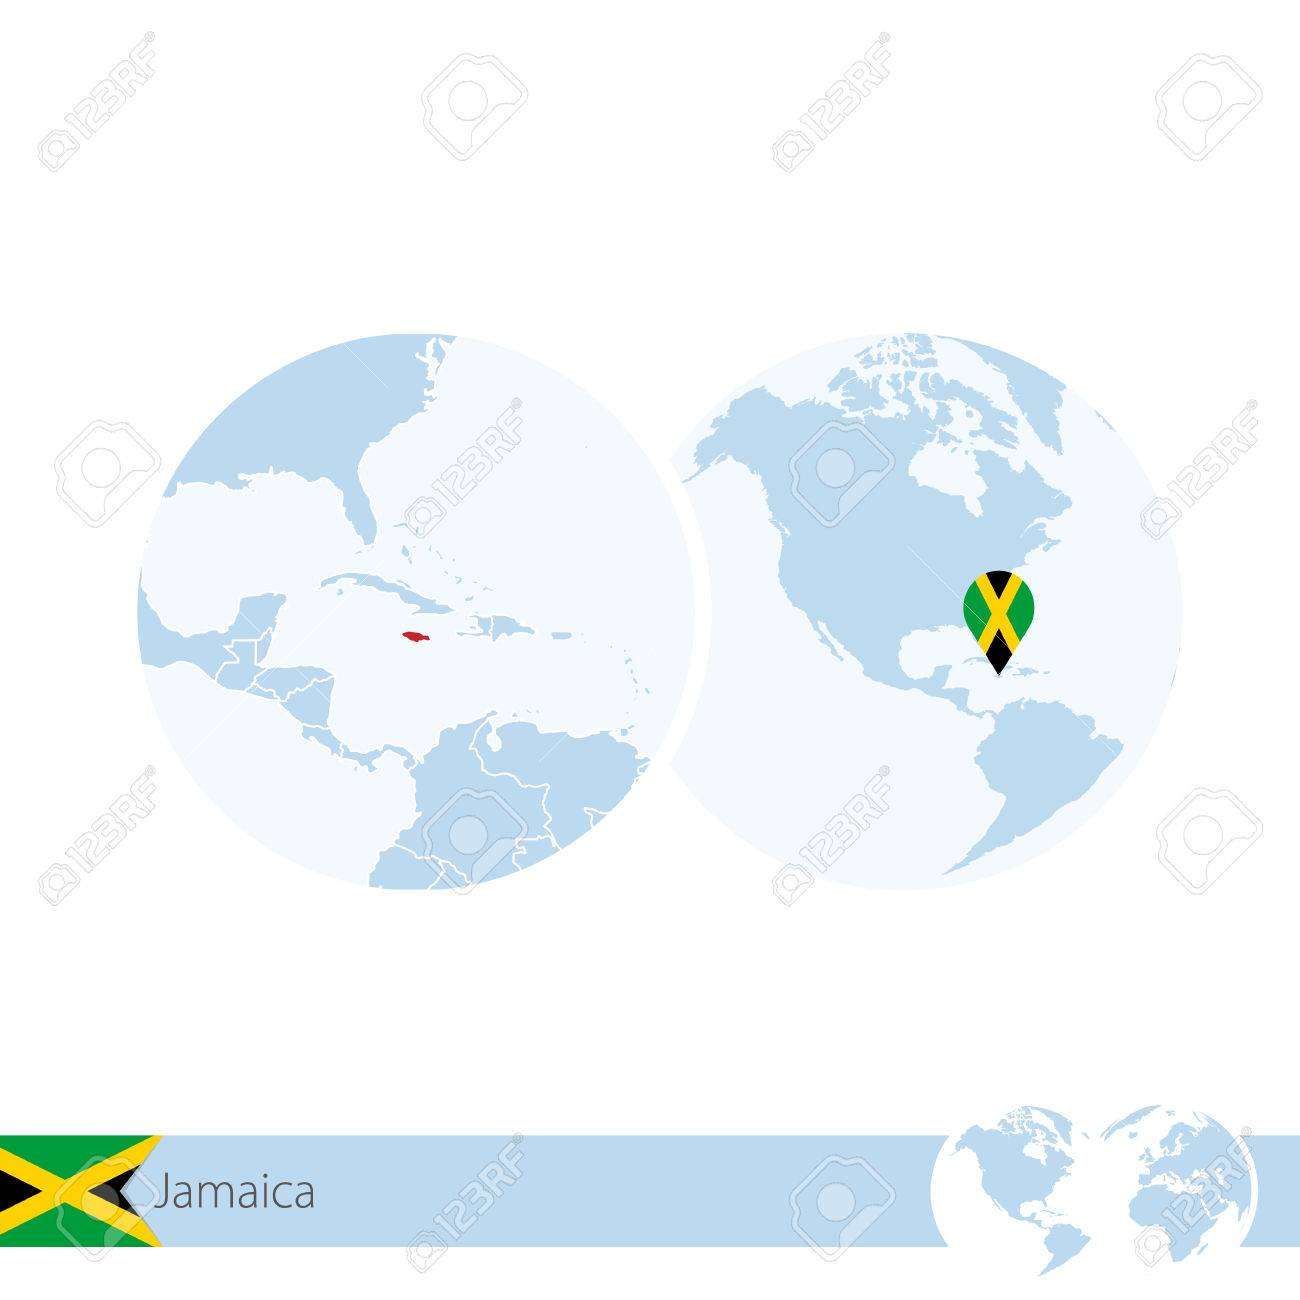 Jamaica On World Globe With Flag And Regional Map Of Jamaica. Vector  Illustration. Stock